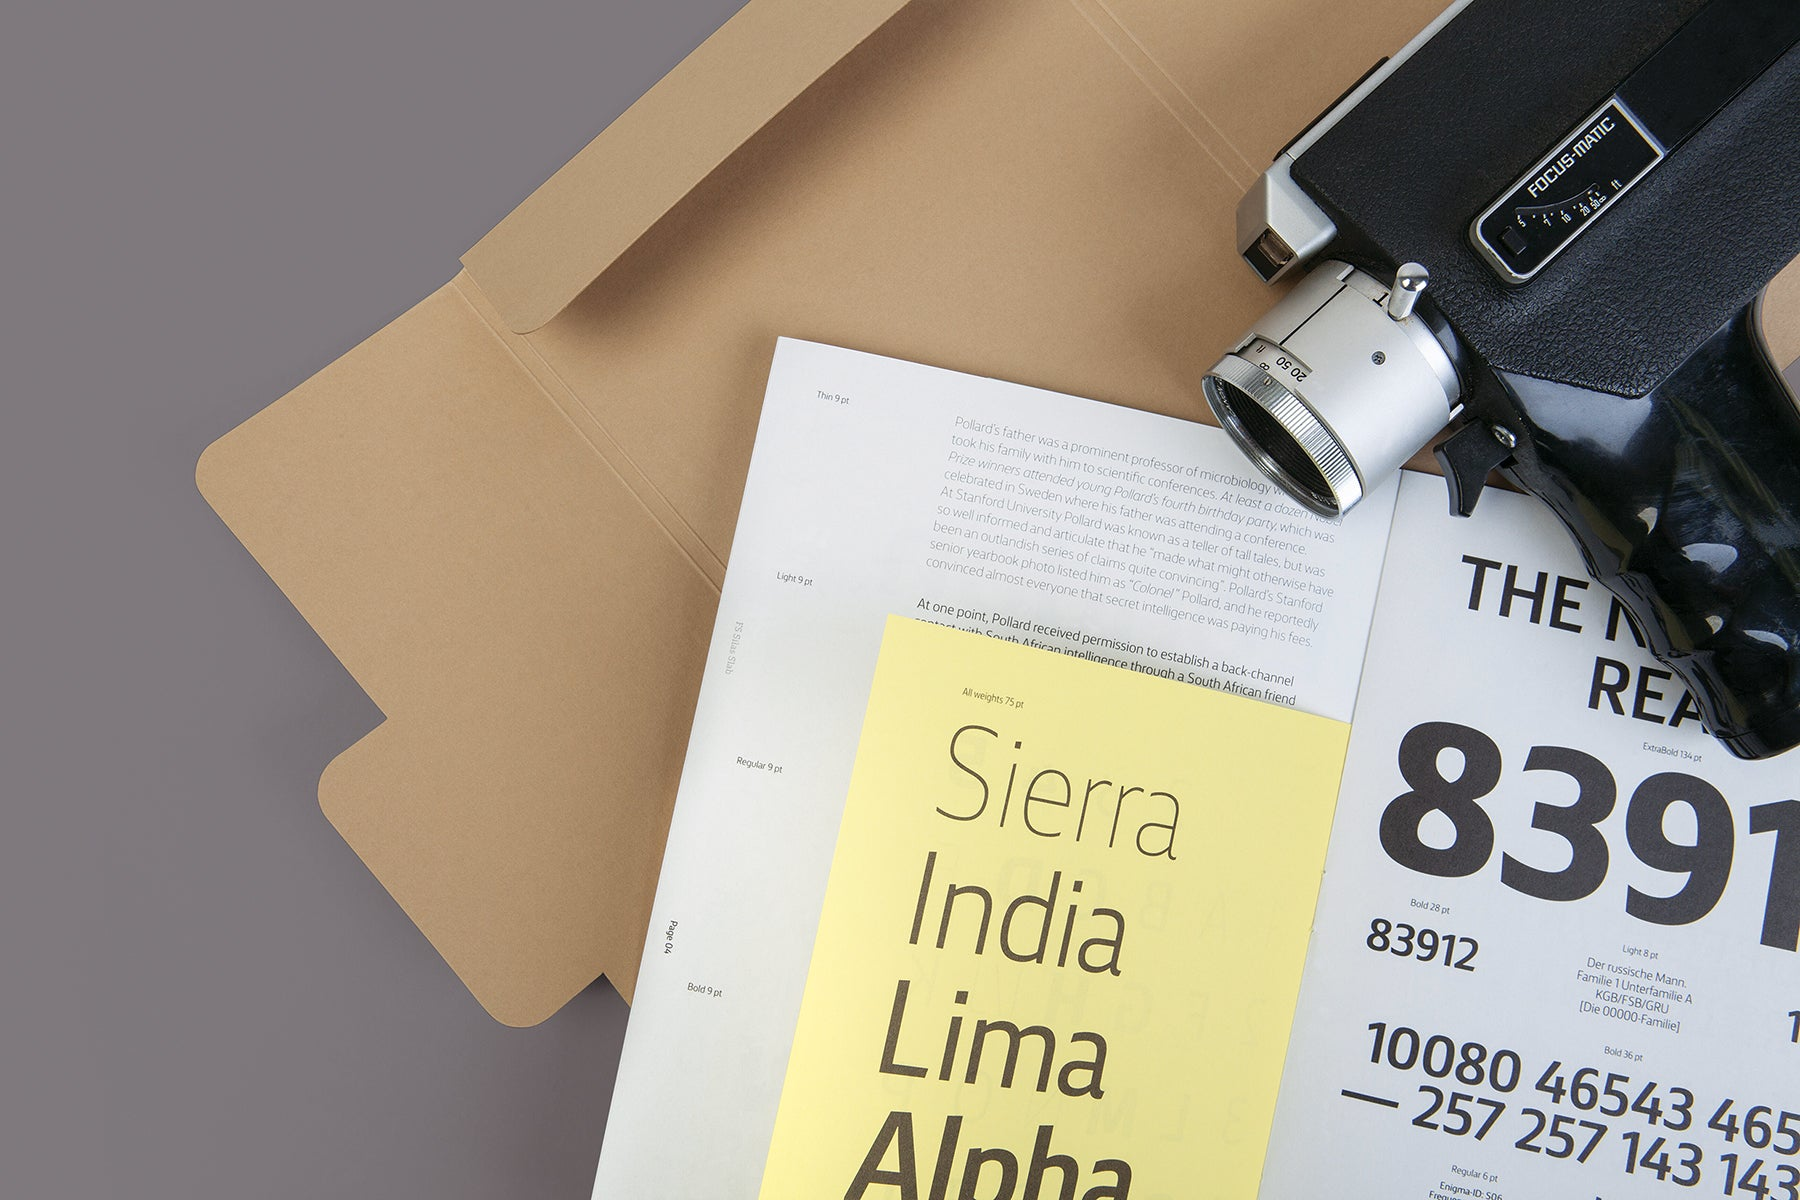 FS Silas Specimen | Inspired by dossiers, secret files and classic type specimens of the 1950s and 60s